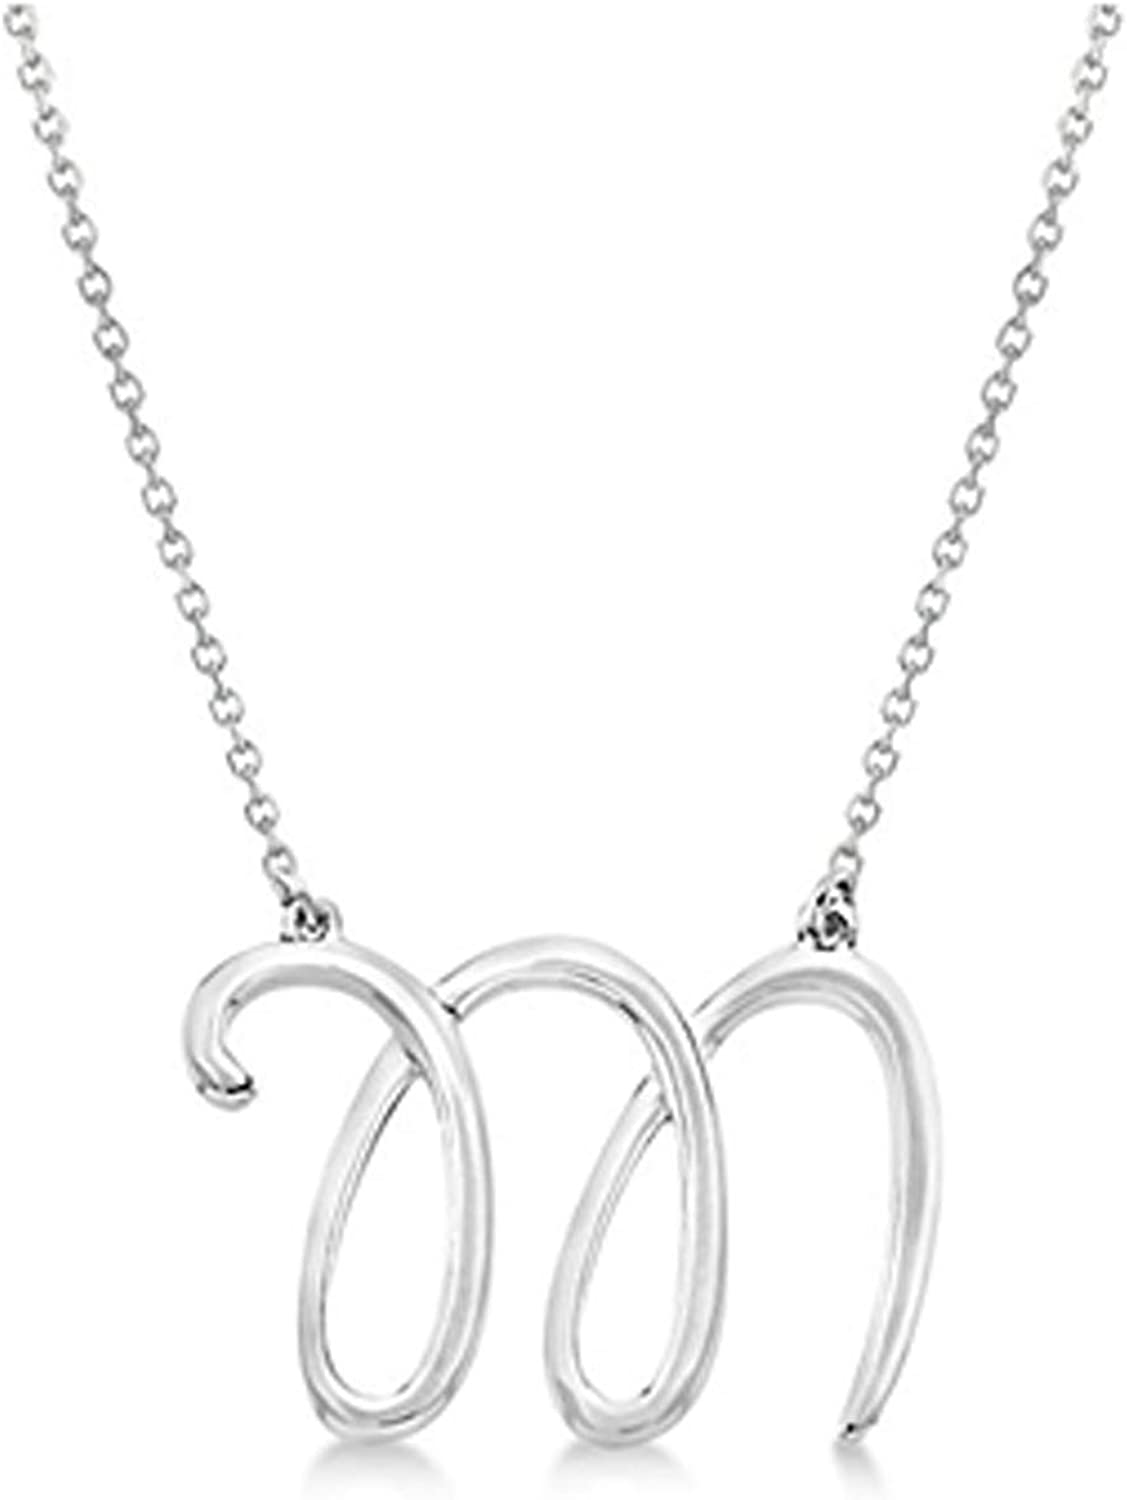 Personalized Cursive Script Single Initial Pendant in Sterling Silver Sterling Silver Necklace for Women /& Girls